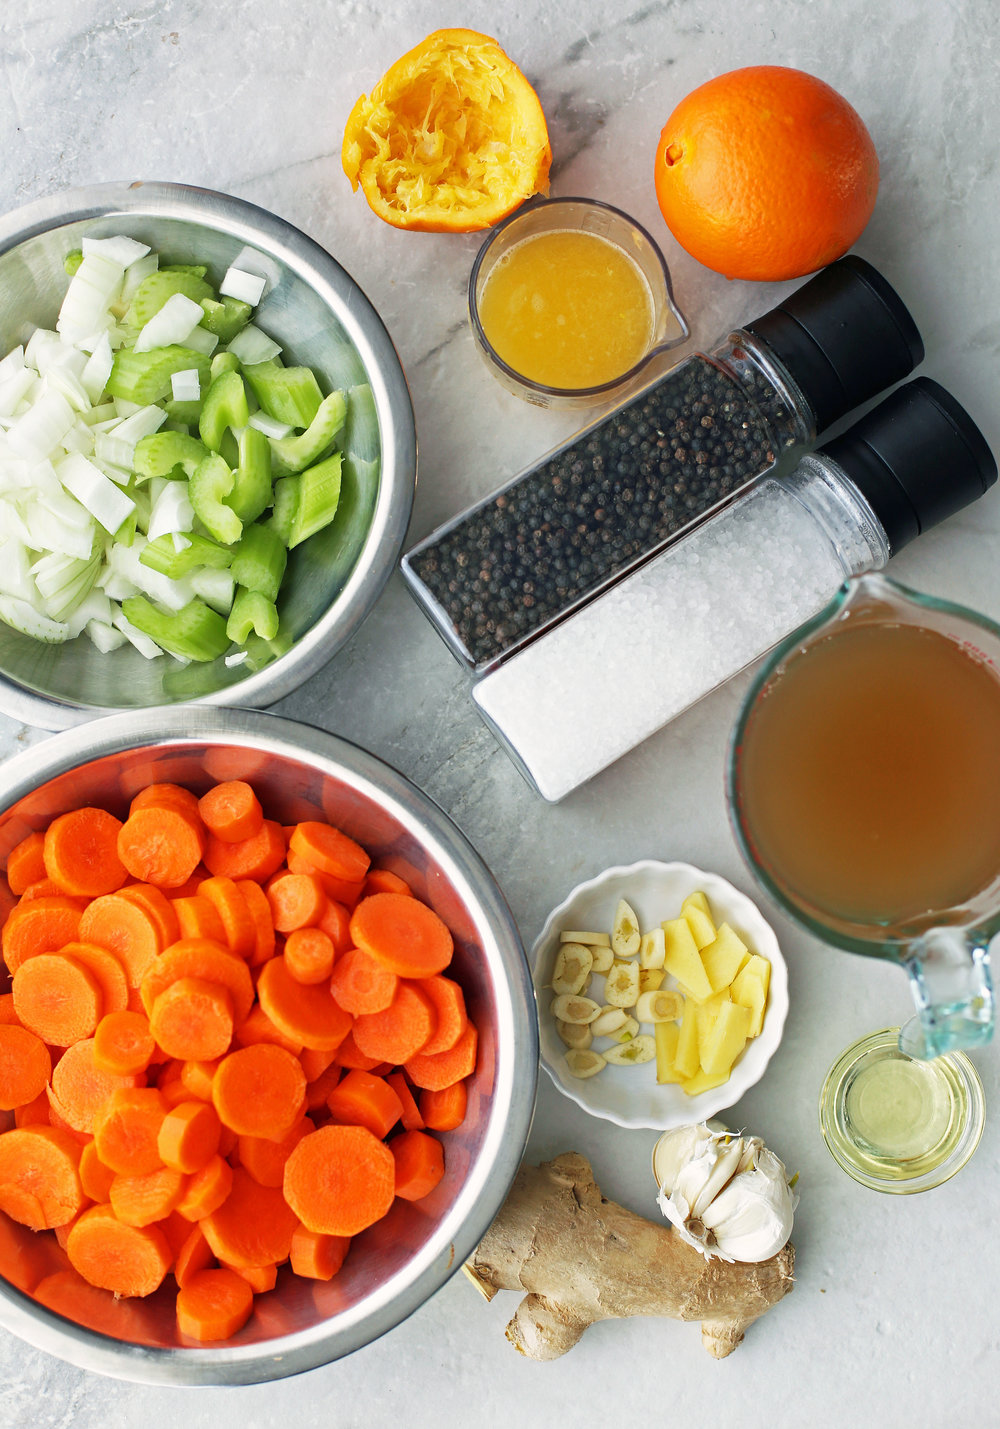 Bowls of carrots, onions, celery, ginger, garlic, vegetable broth, and orange juice along with salt and pepper shakers..